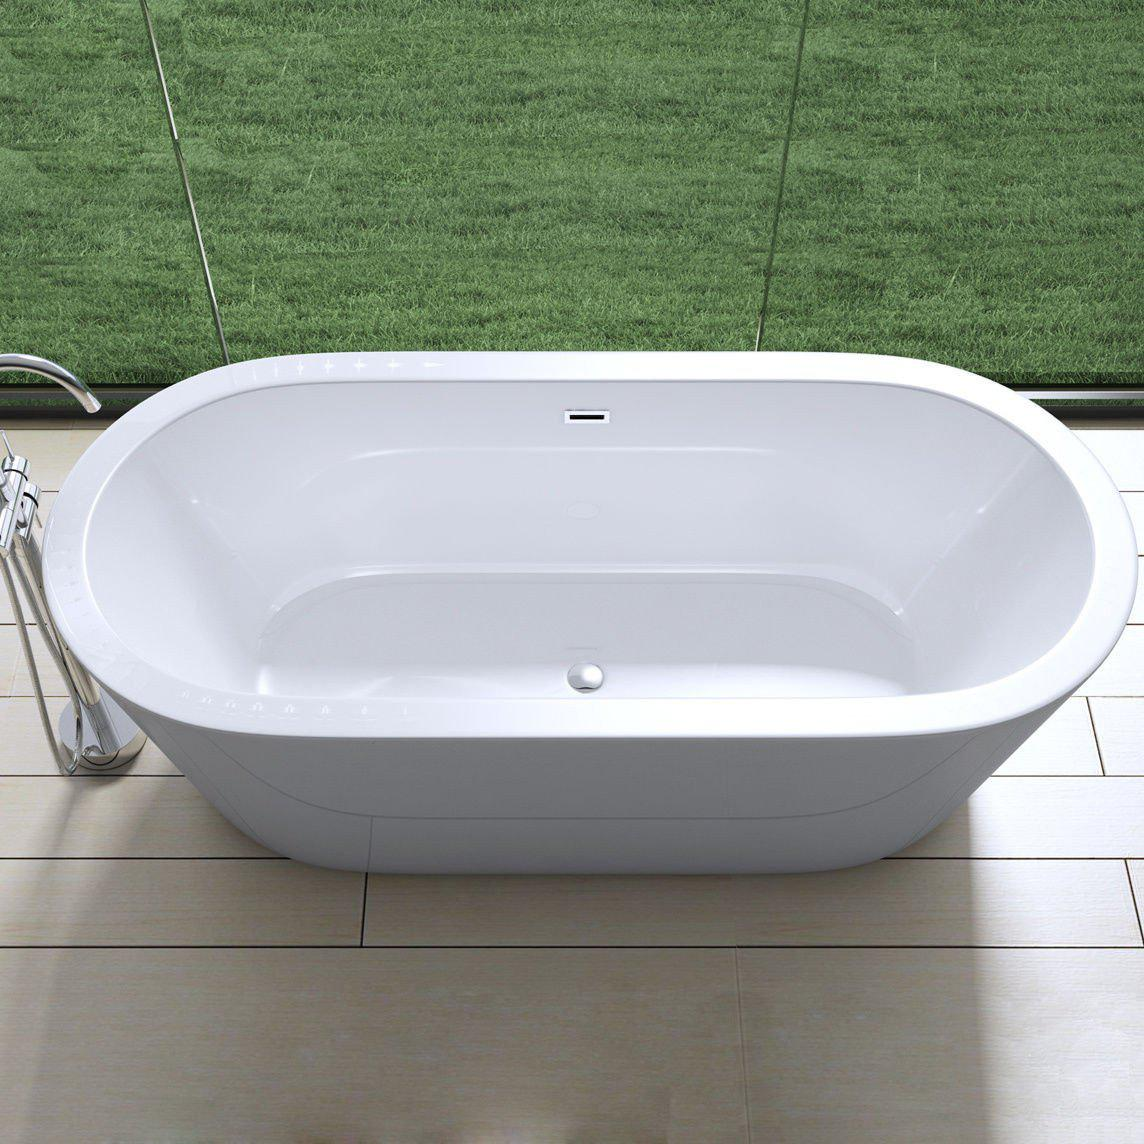 Vicenza 511 deep fill bath tub, glossy white finish